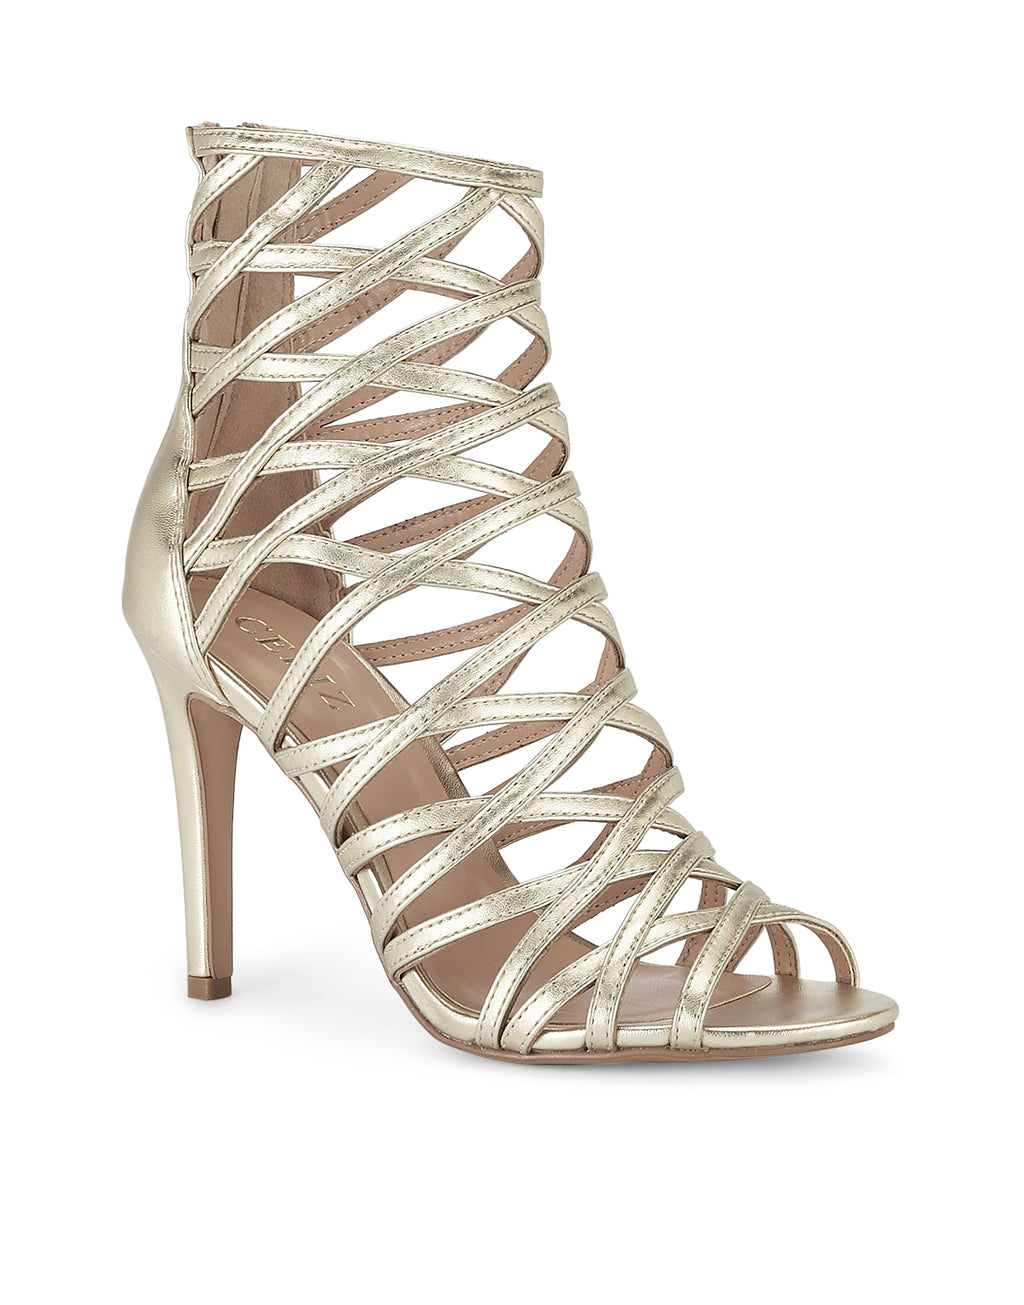 Salome Gold Stiletto Sandals